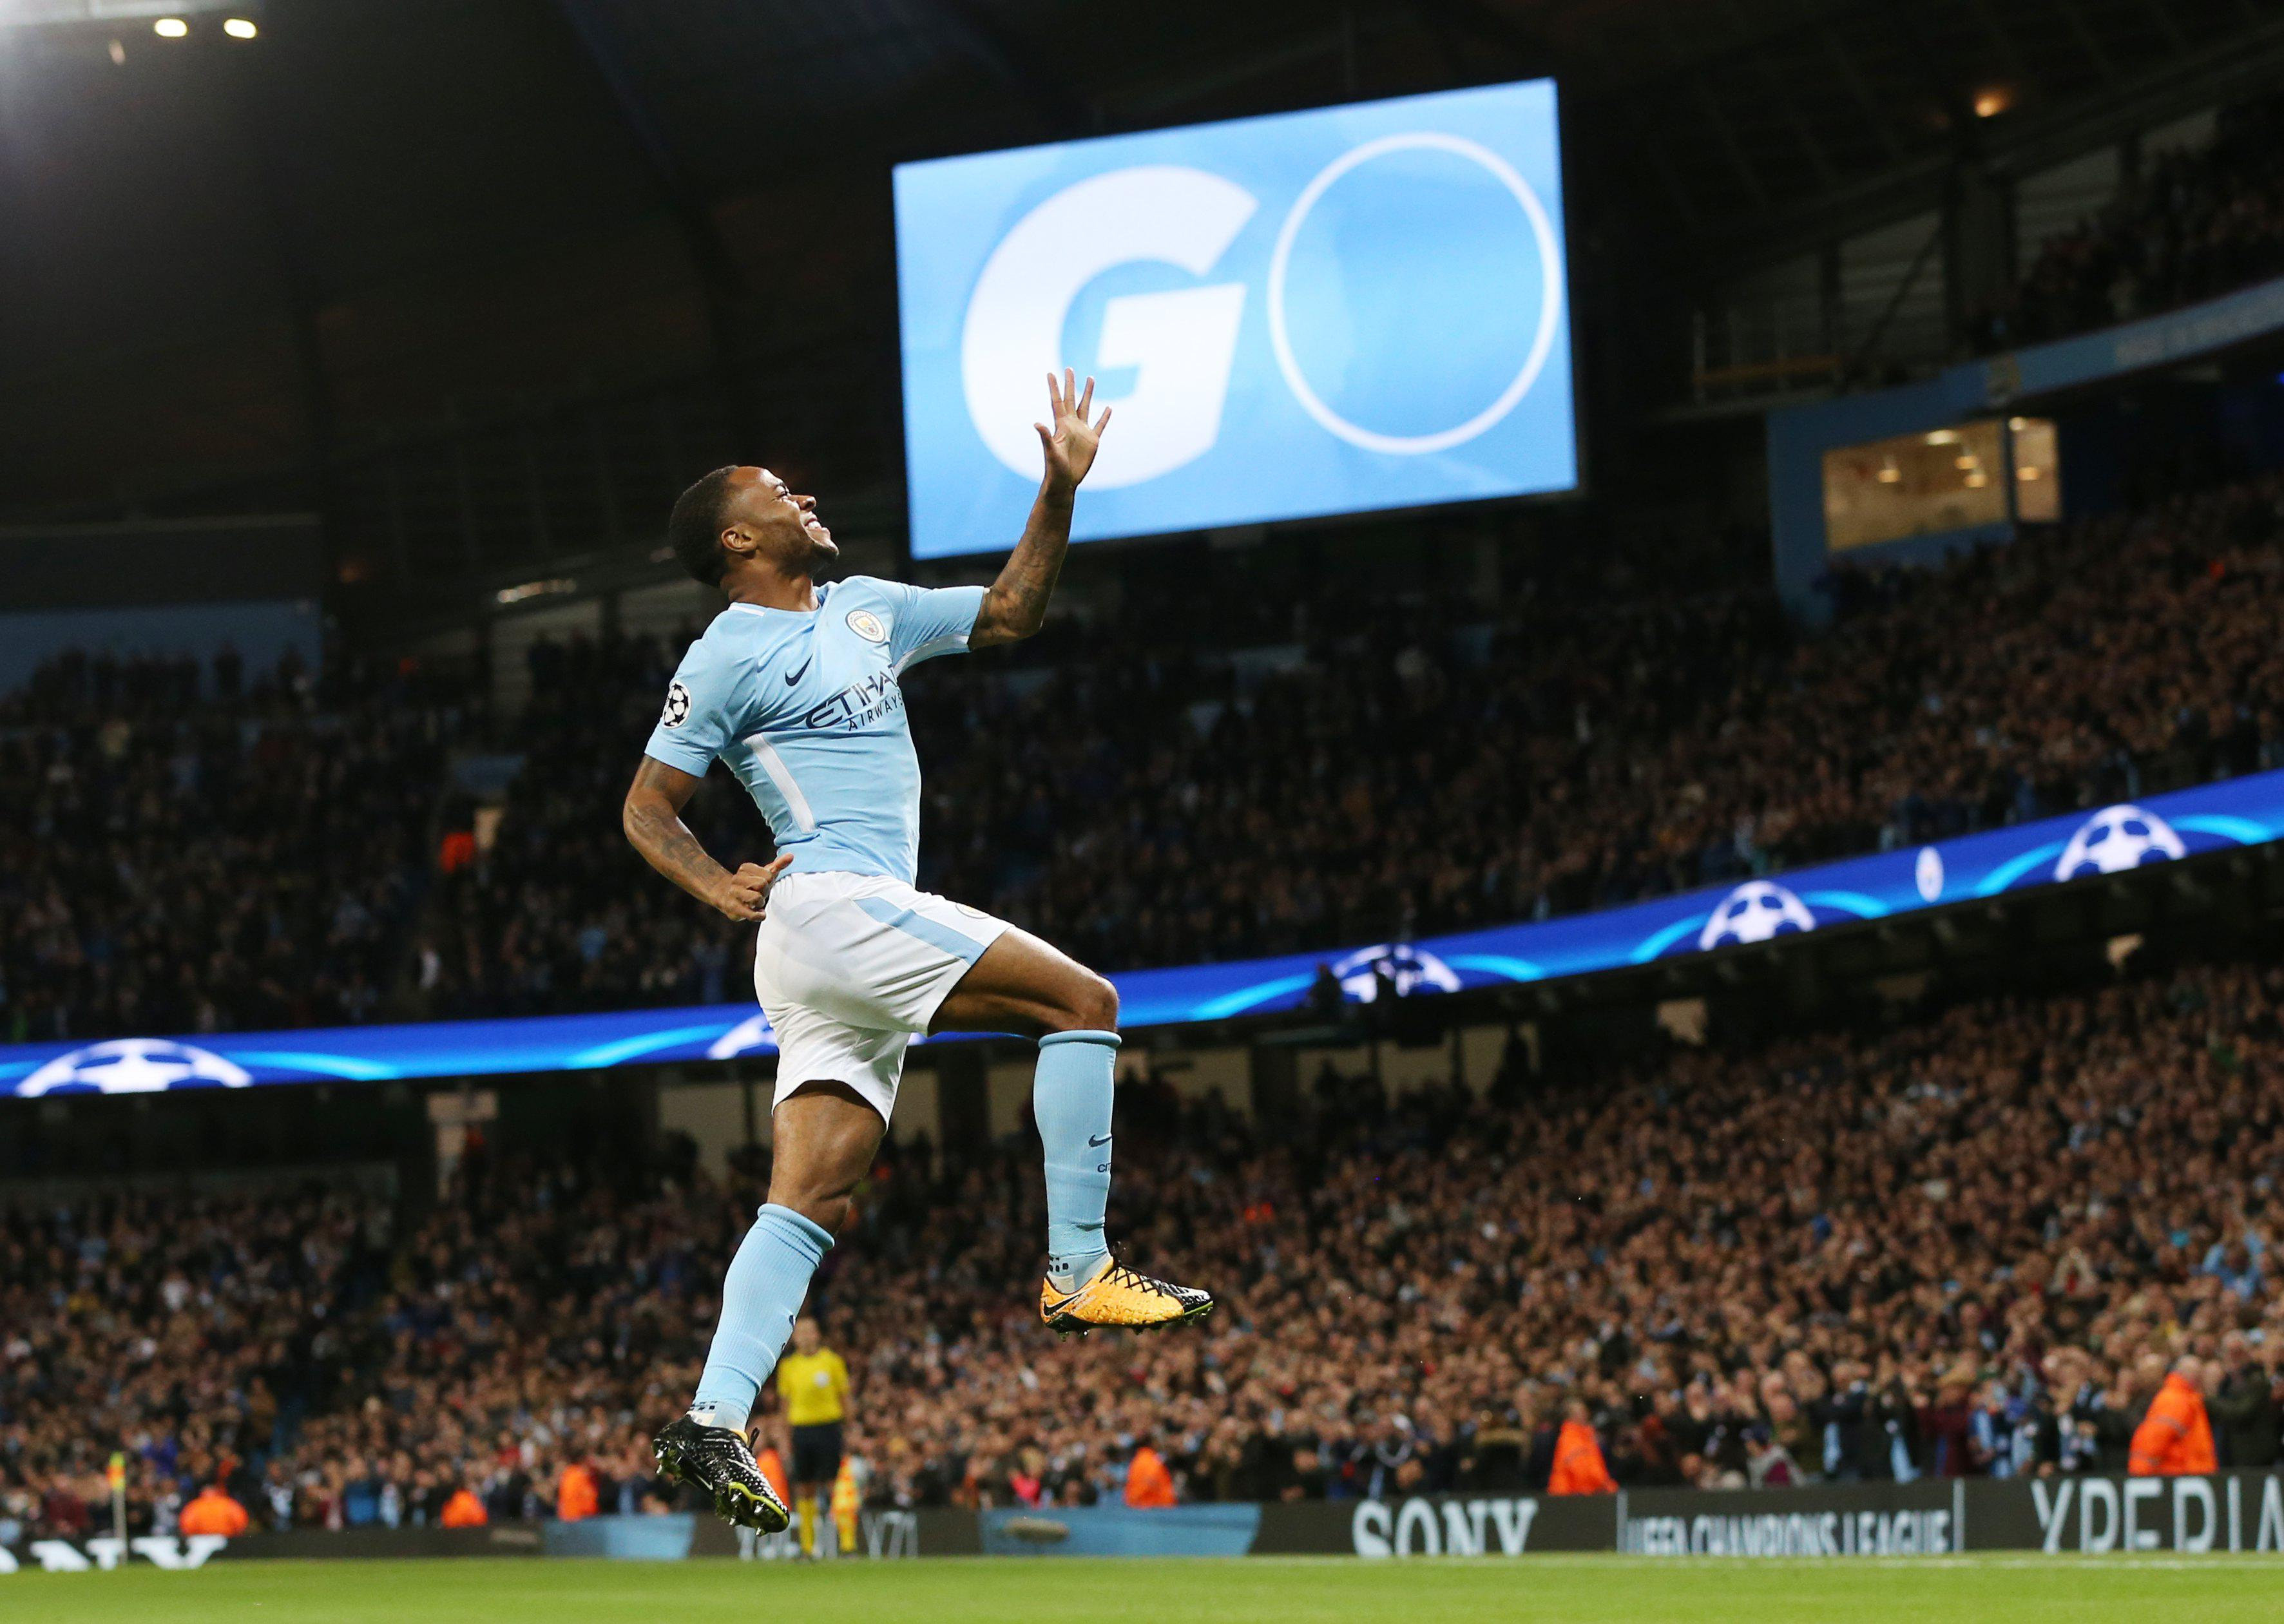 Happy days again at the Etihad